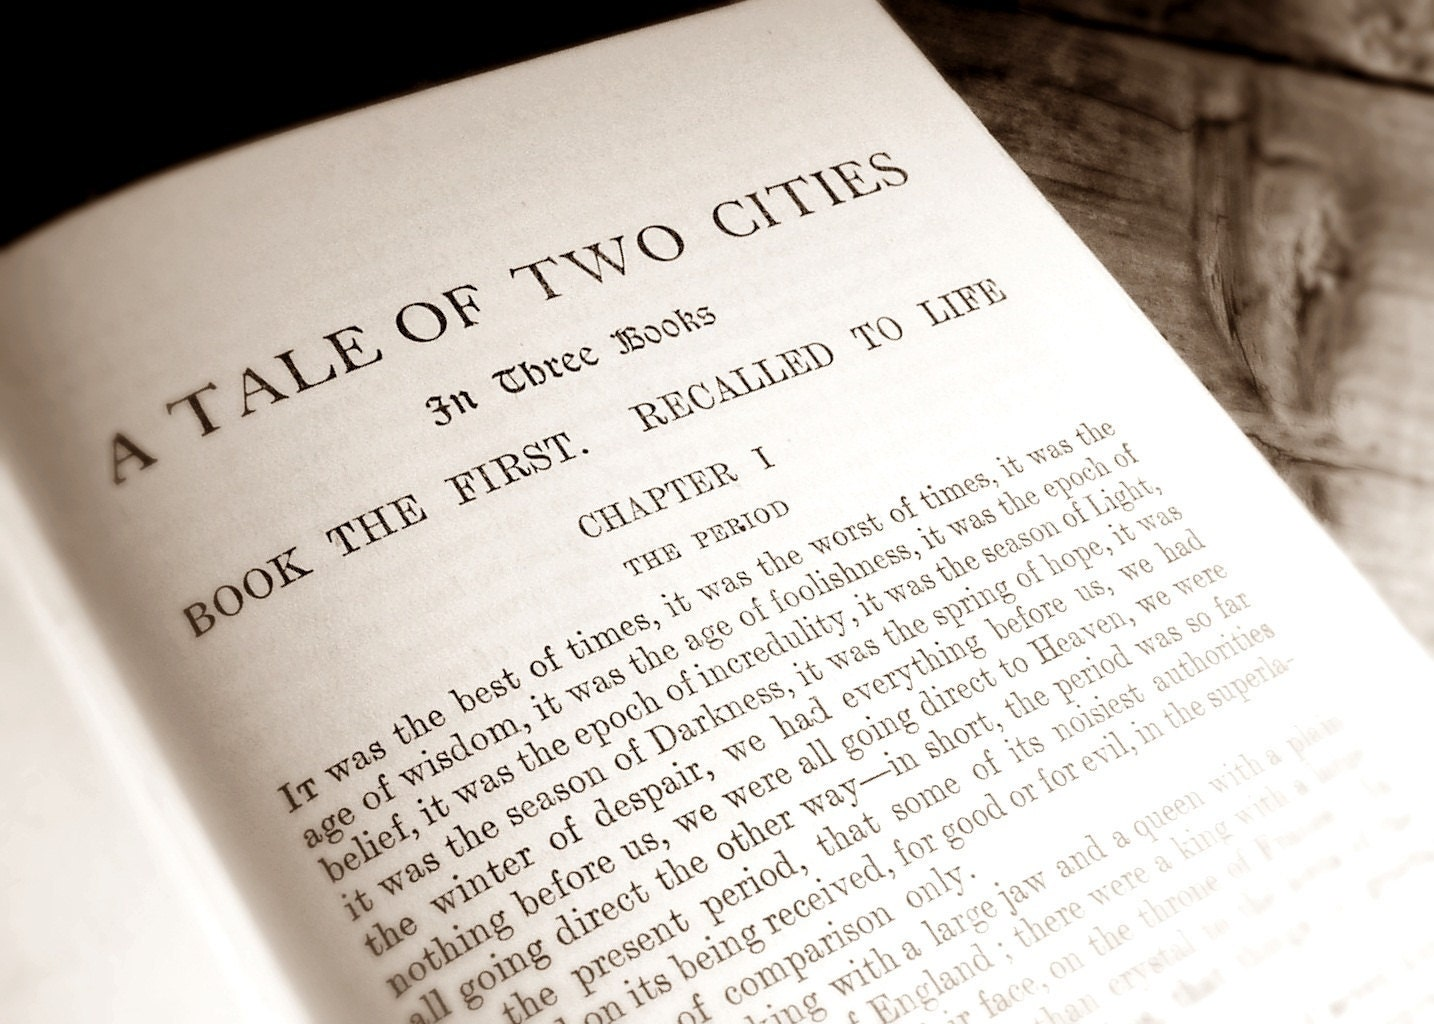 A tale of two cities sydney carton essay